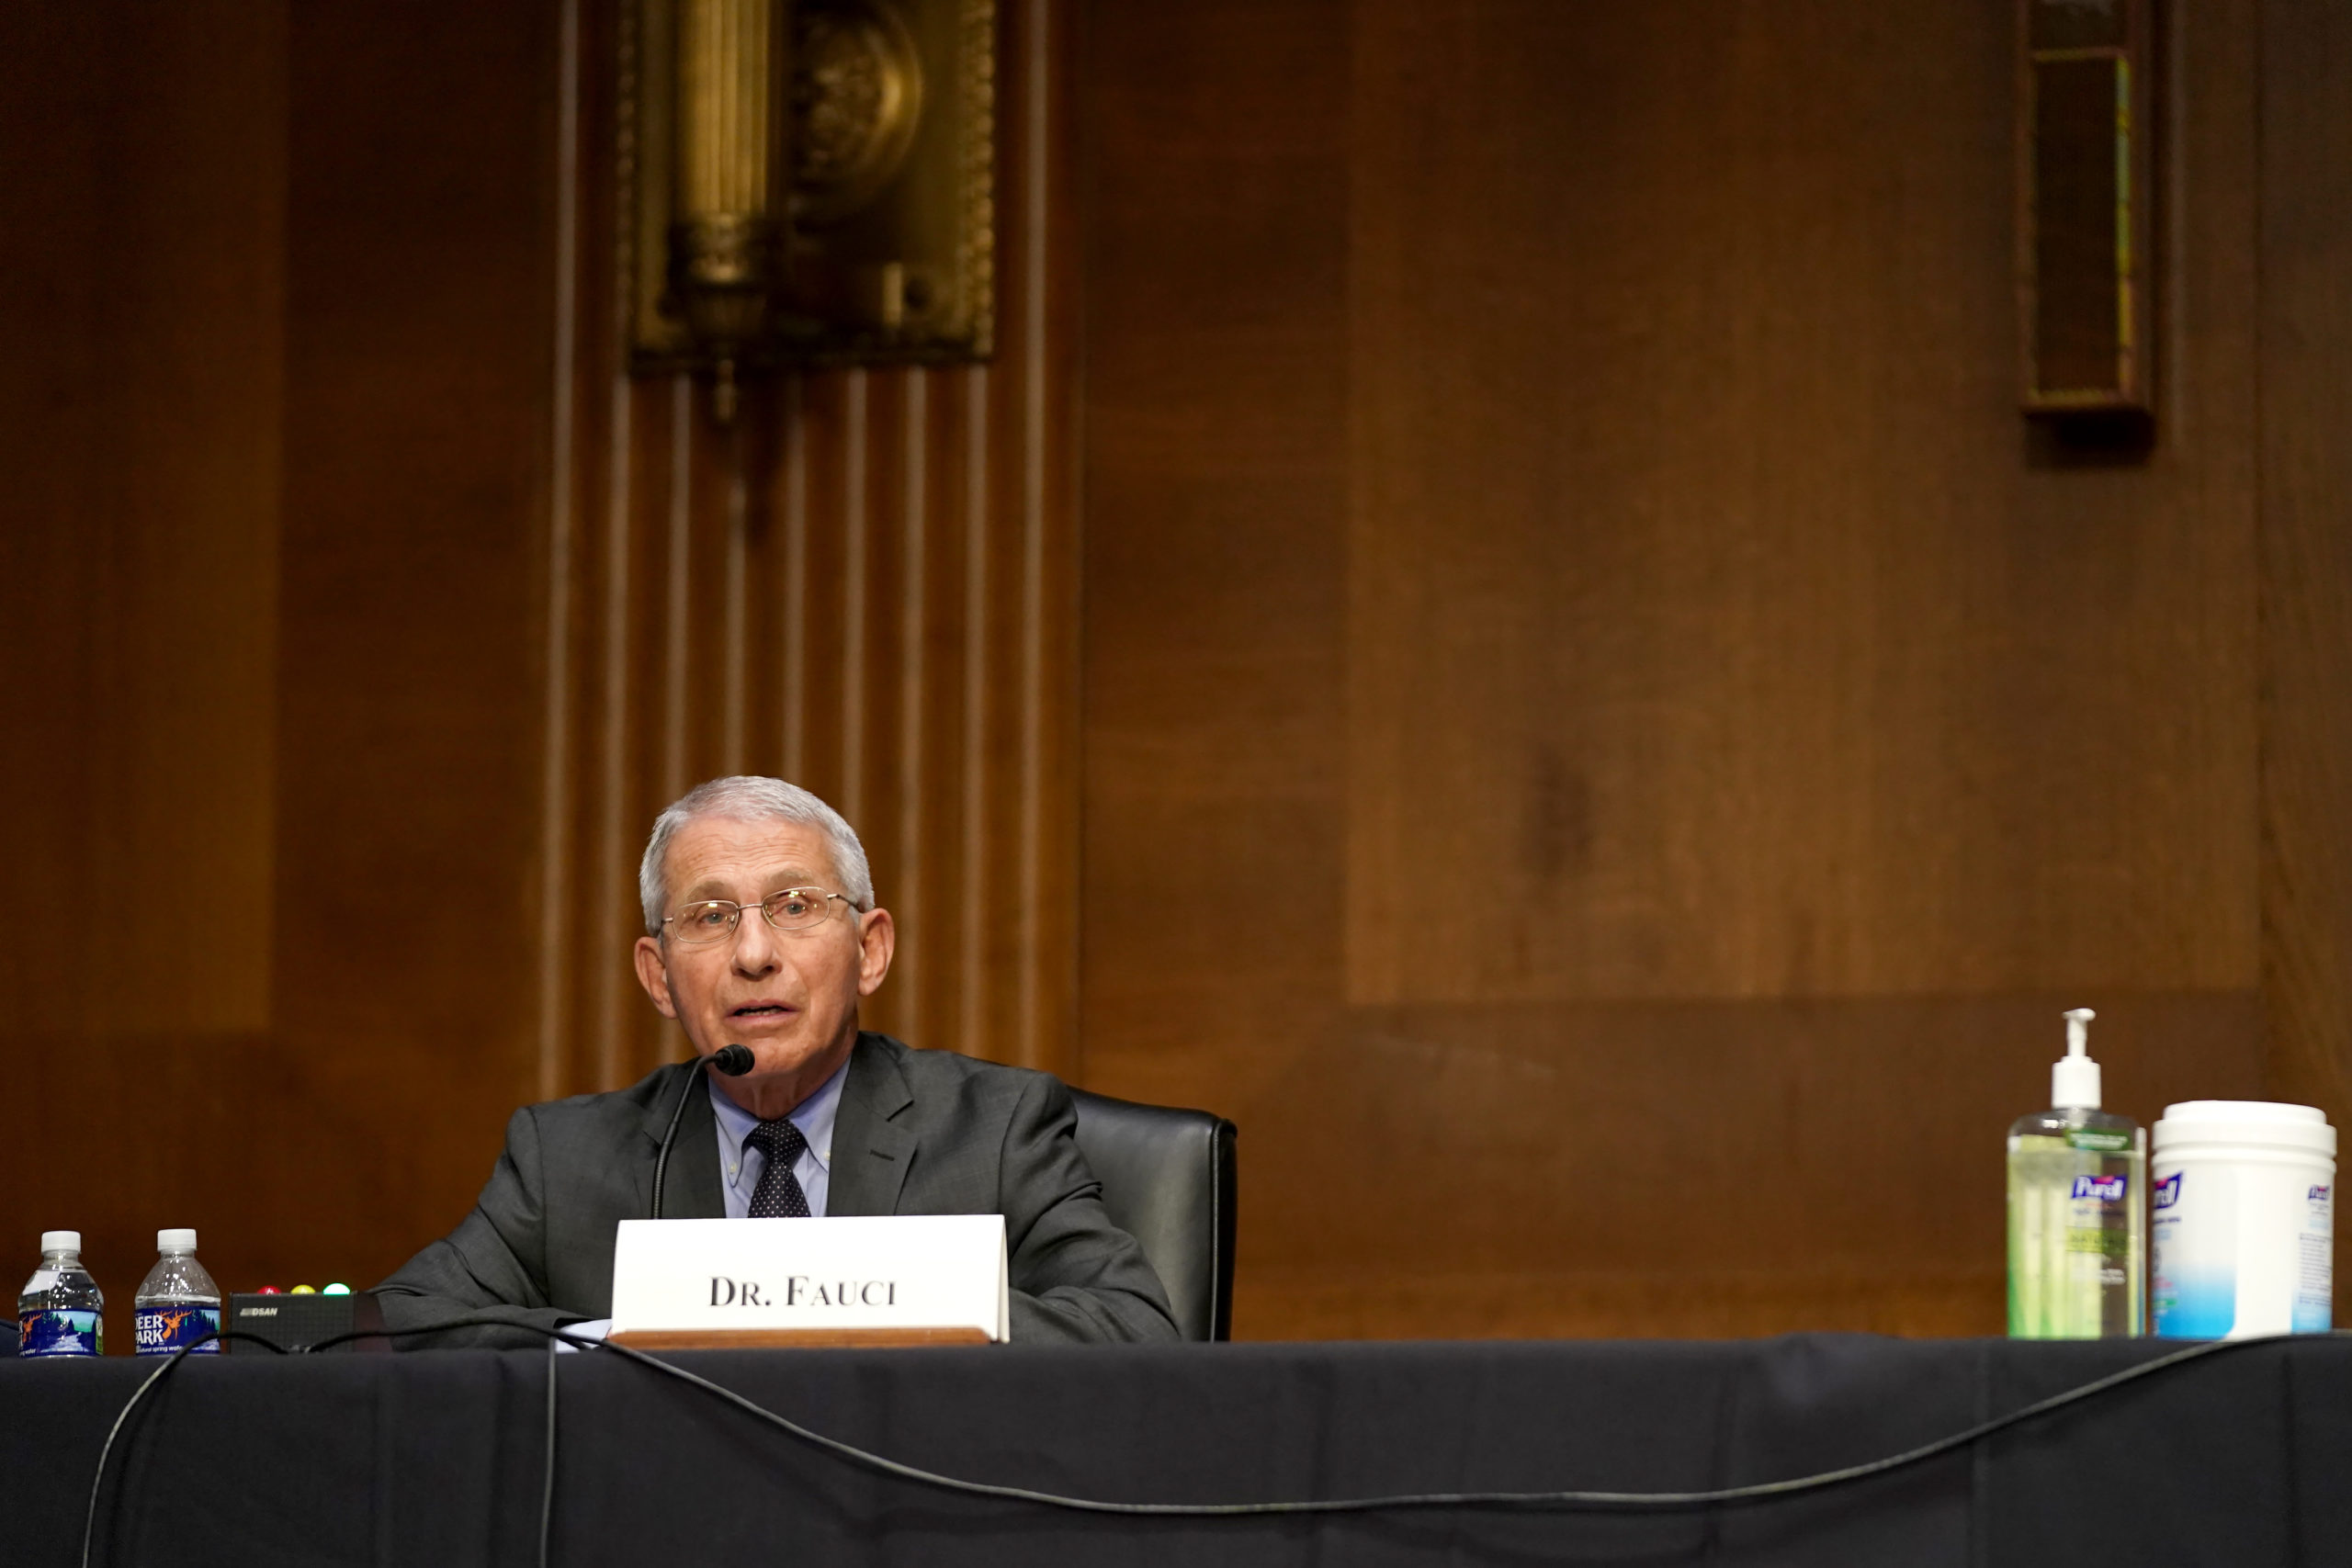 Dr. Anthony Fauci speaks during a Senate Health, Education, Labor and Pensions Committee hearing. (Photo by Greg Nash-Pool/Getty Images)